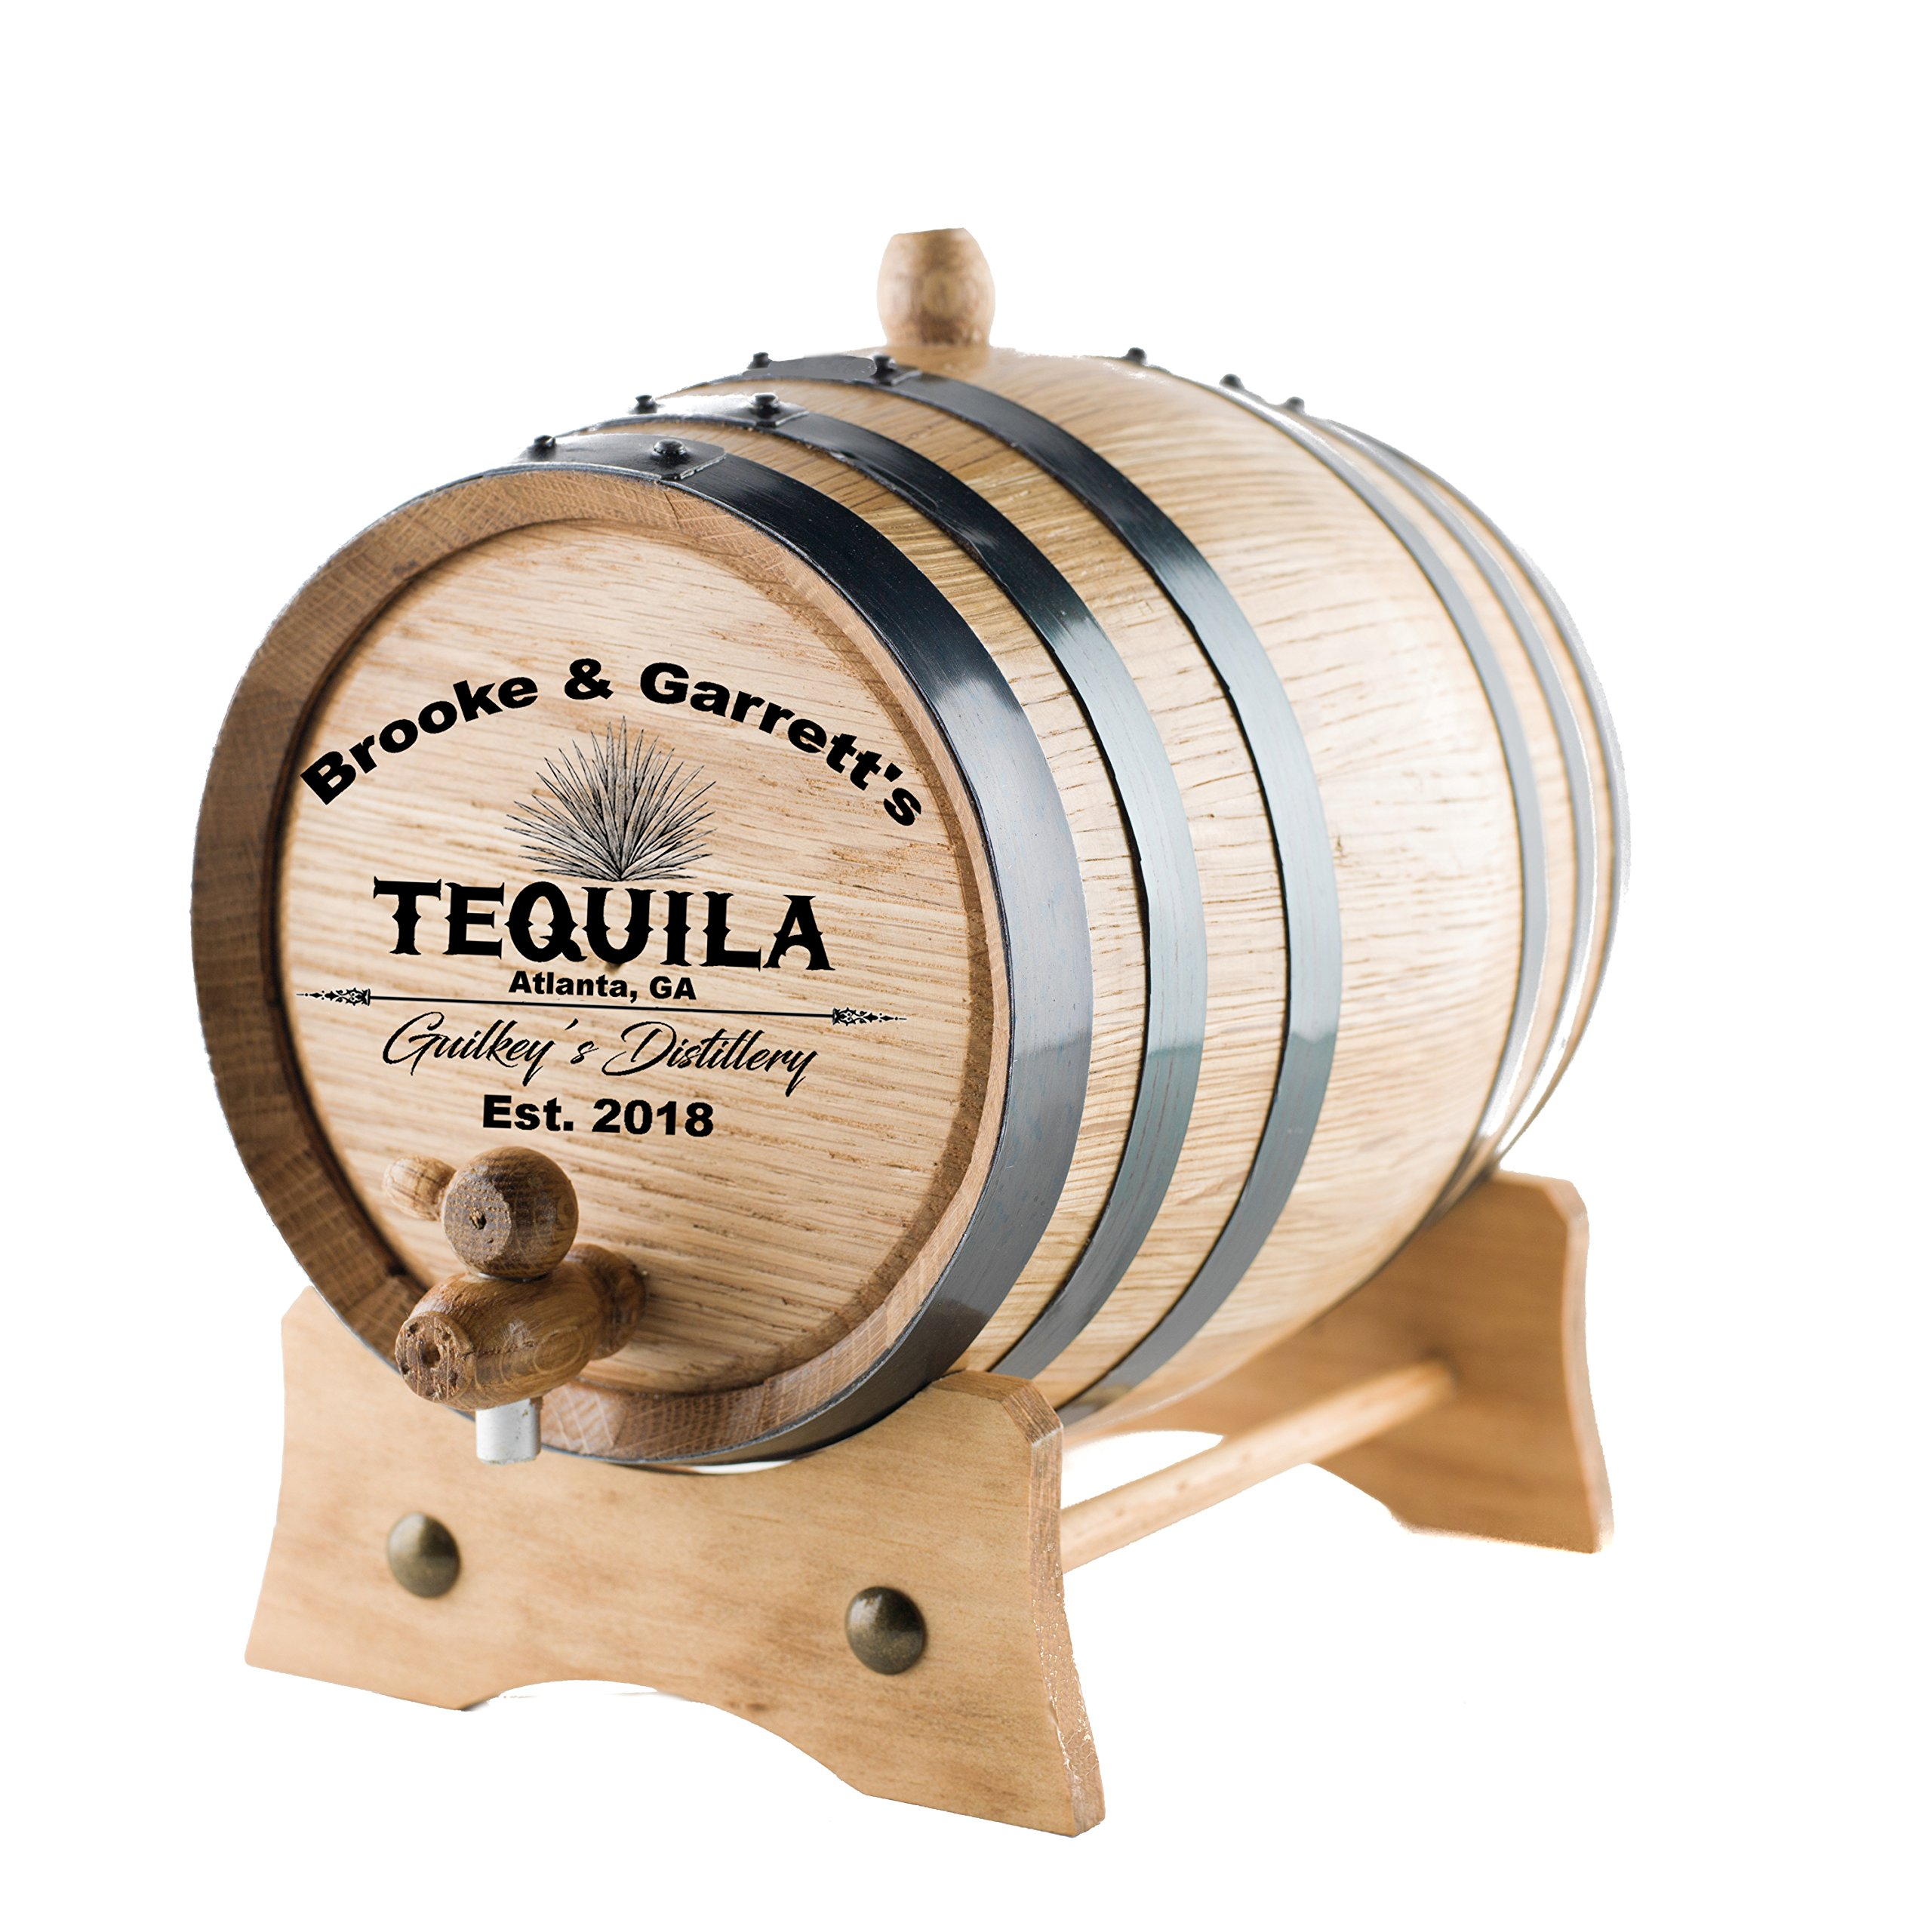 Personalized Tequila Oak Barrel | Custom Engraved American White Oak Aging Barrel - Age your own Tequila, Whiskey, Rum, Wine, Beer, Vinegar... (10 Liters) by Sofia's Findings (Image #1)